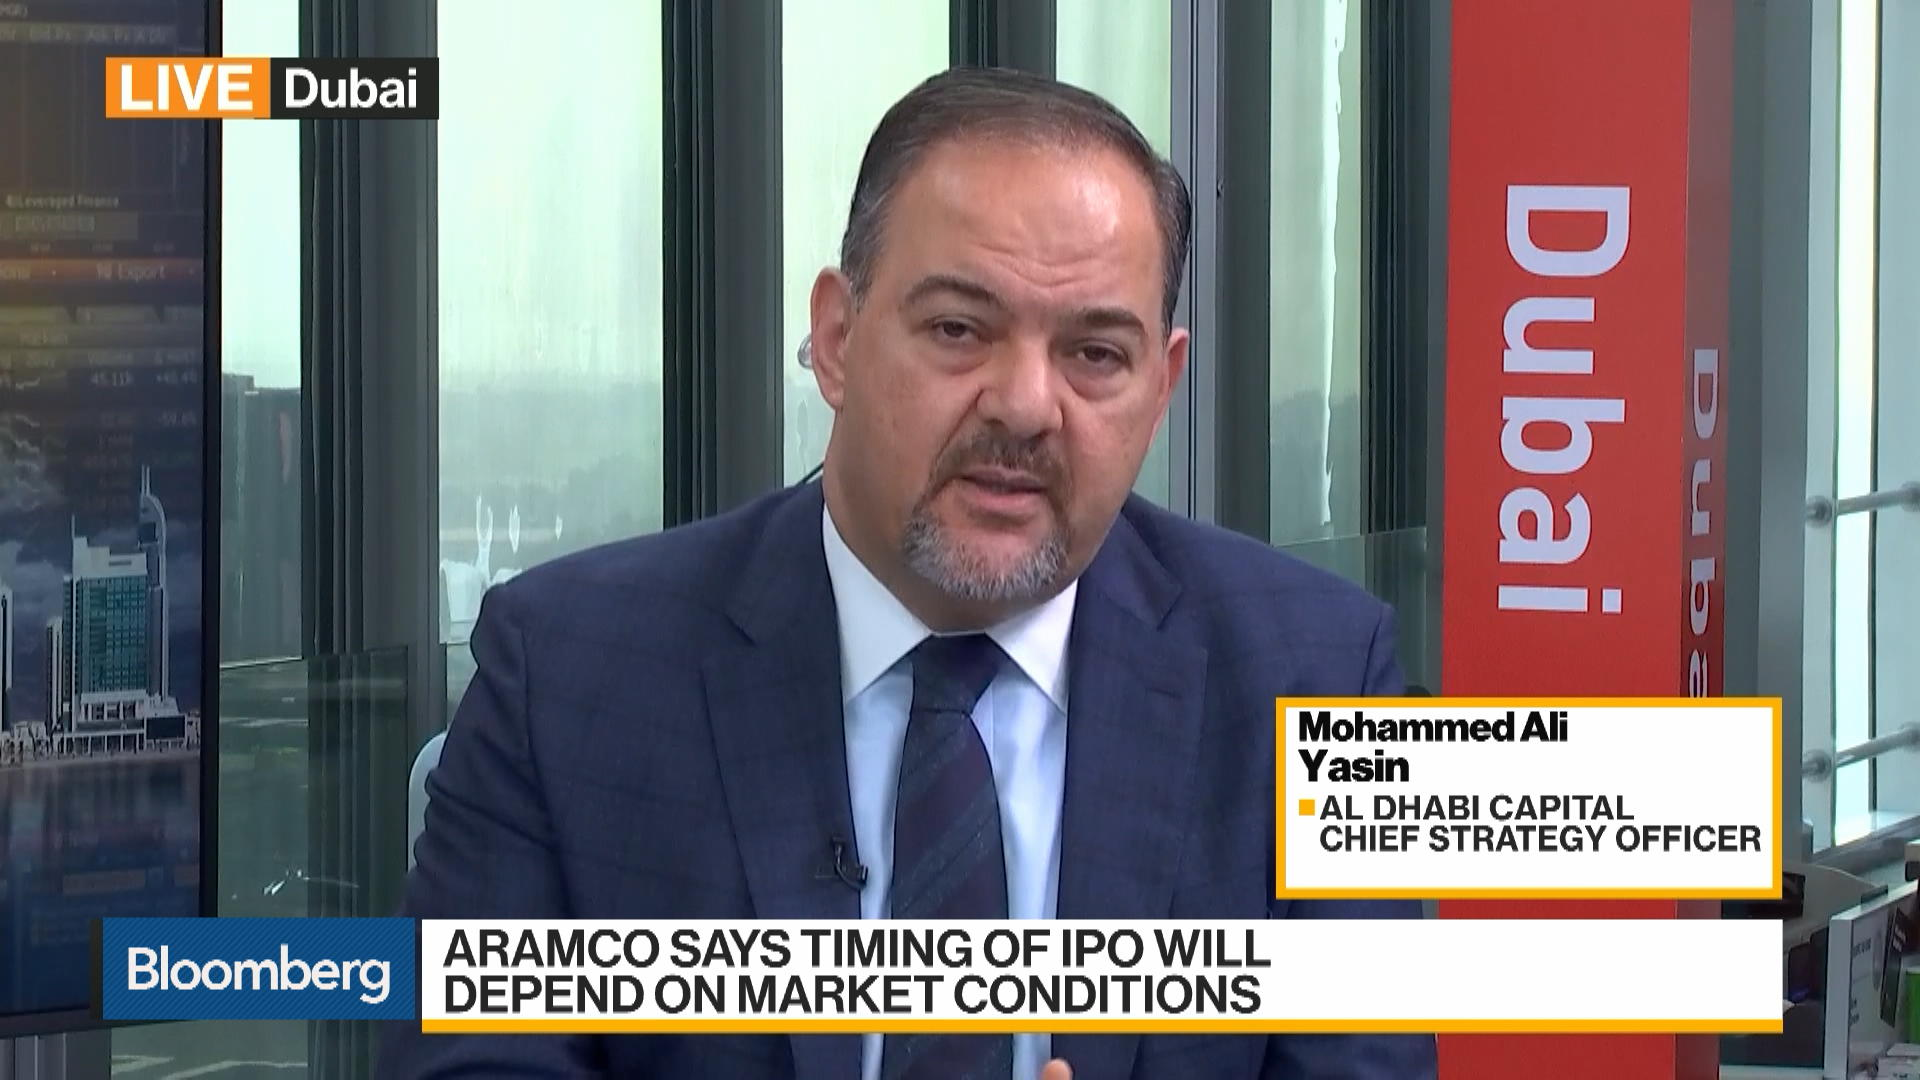 Mohammed Ali Yasin, chief strategy officer at Al Dhabi Capital, on Aramco's Decision to delay IPO